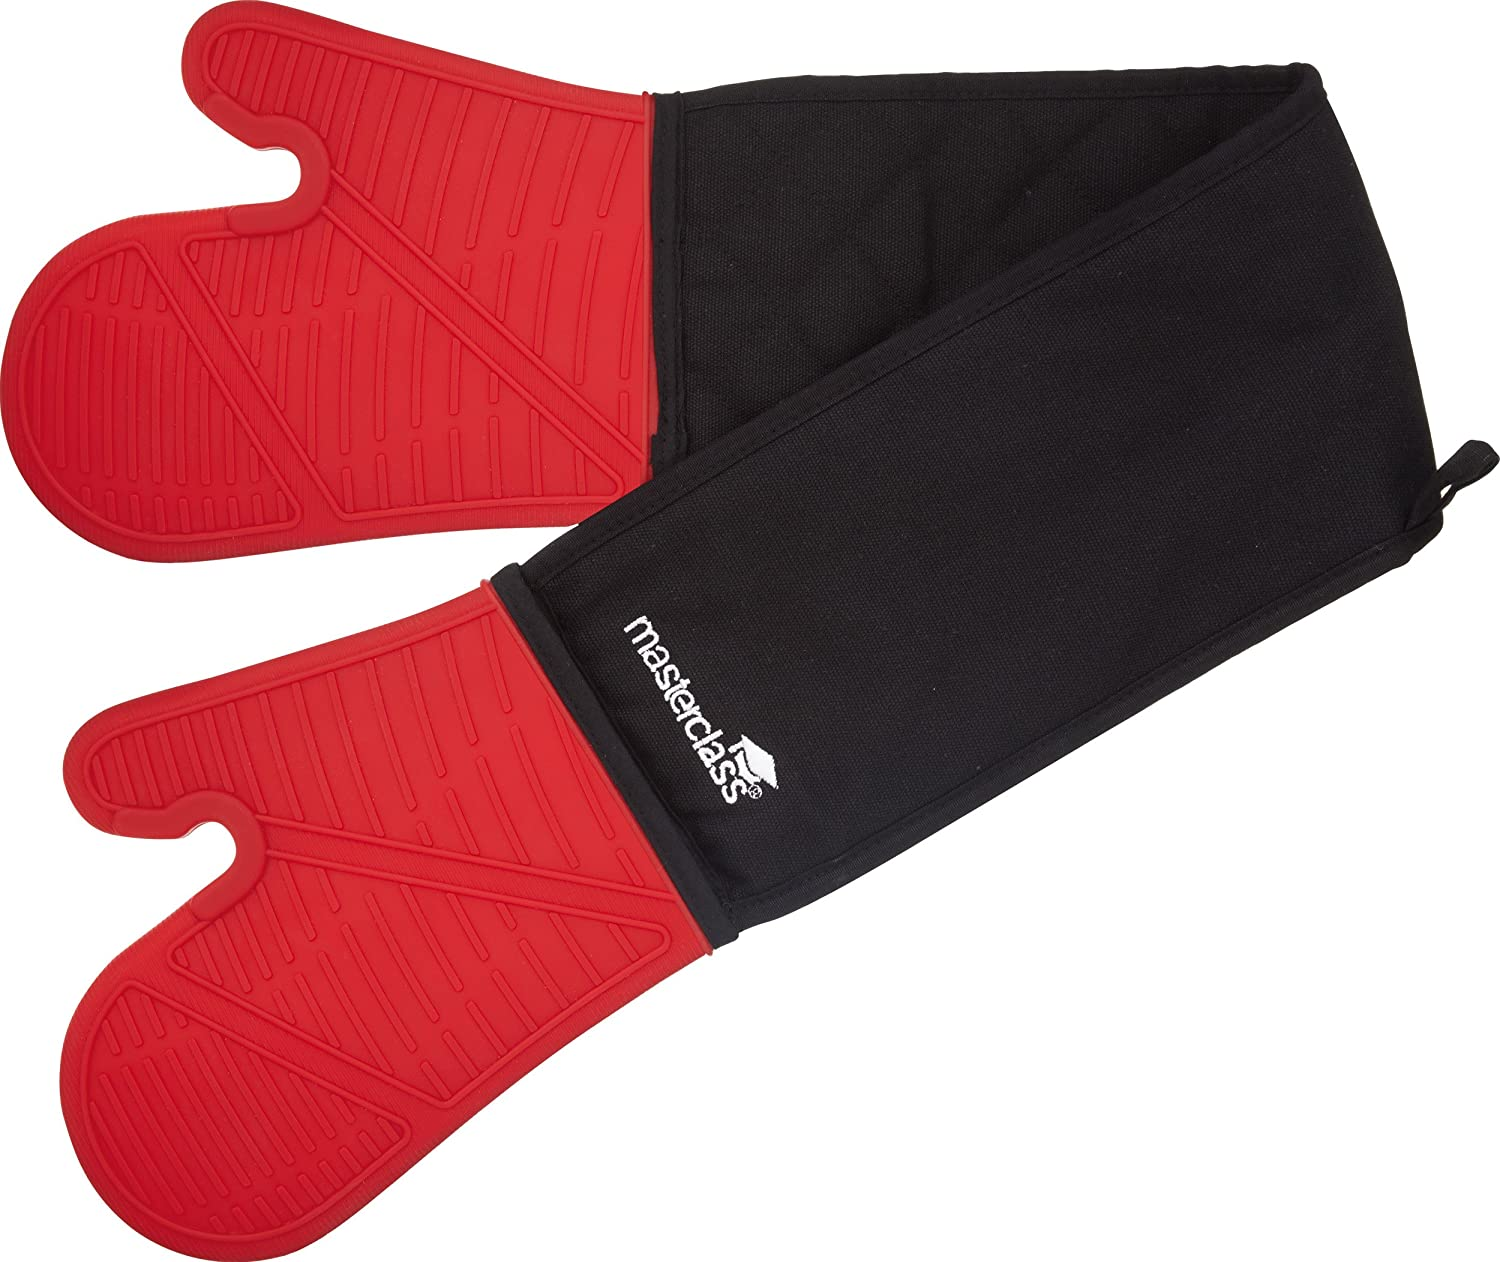 Master Class Double Oven Glove RED, Silicone